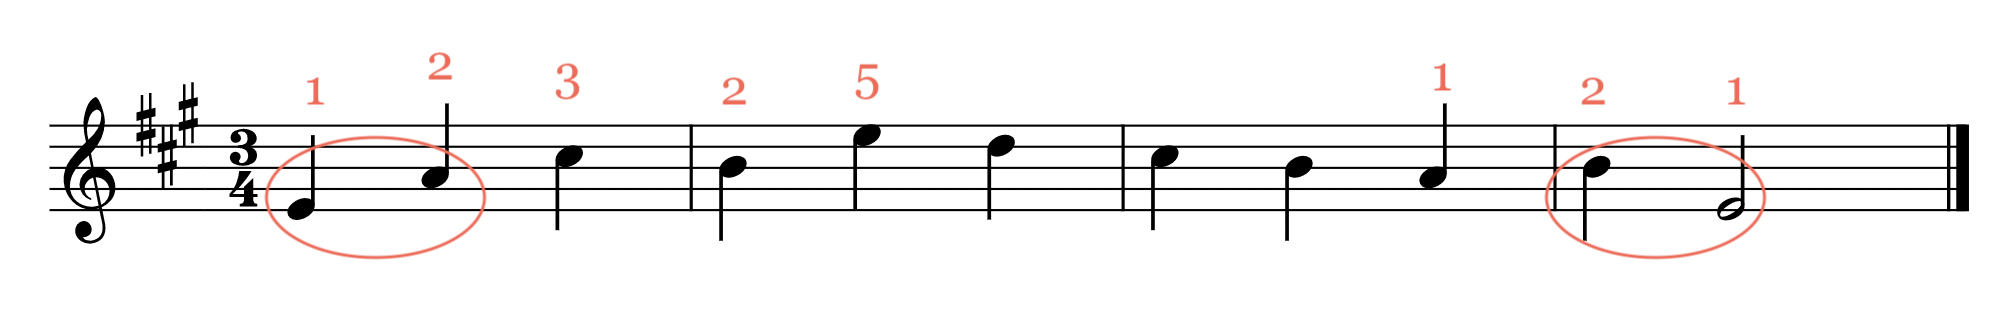 fingers 1 and 2 for large intervals